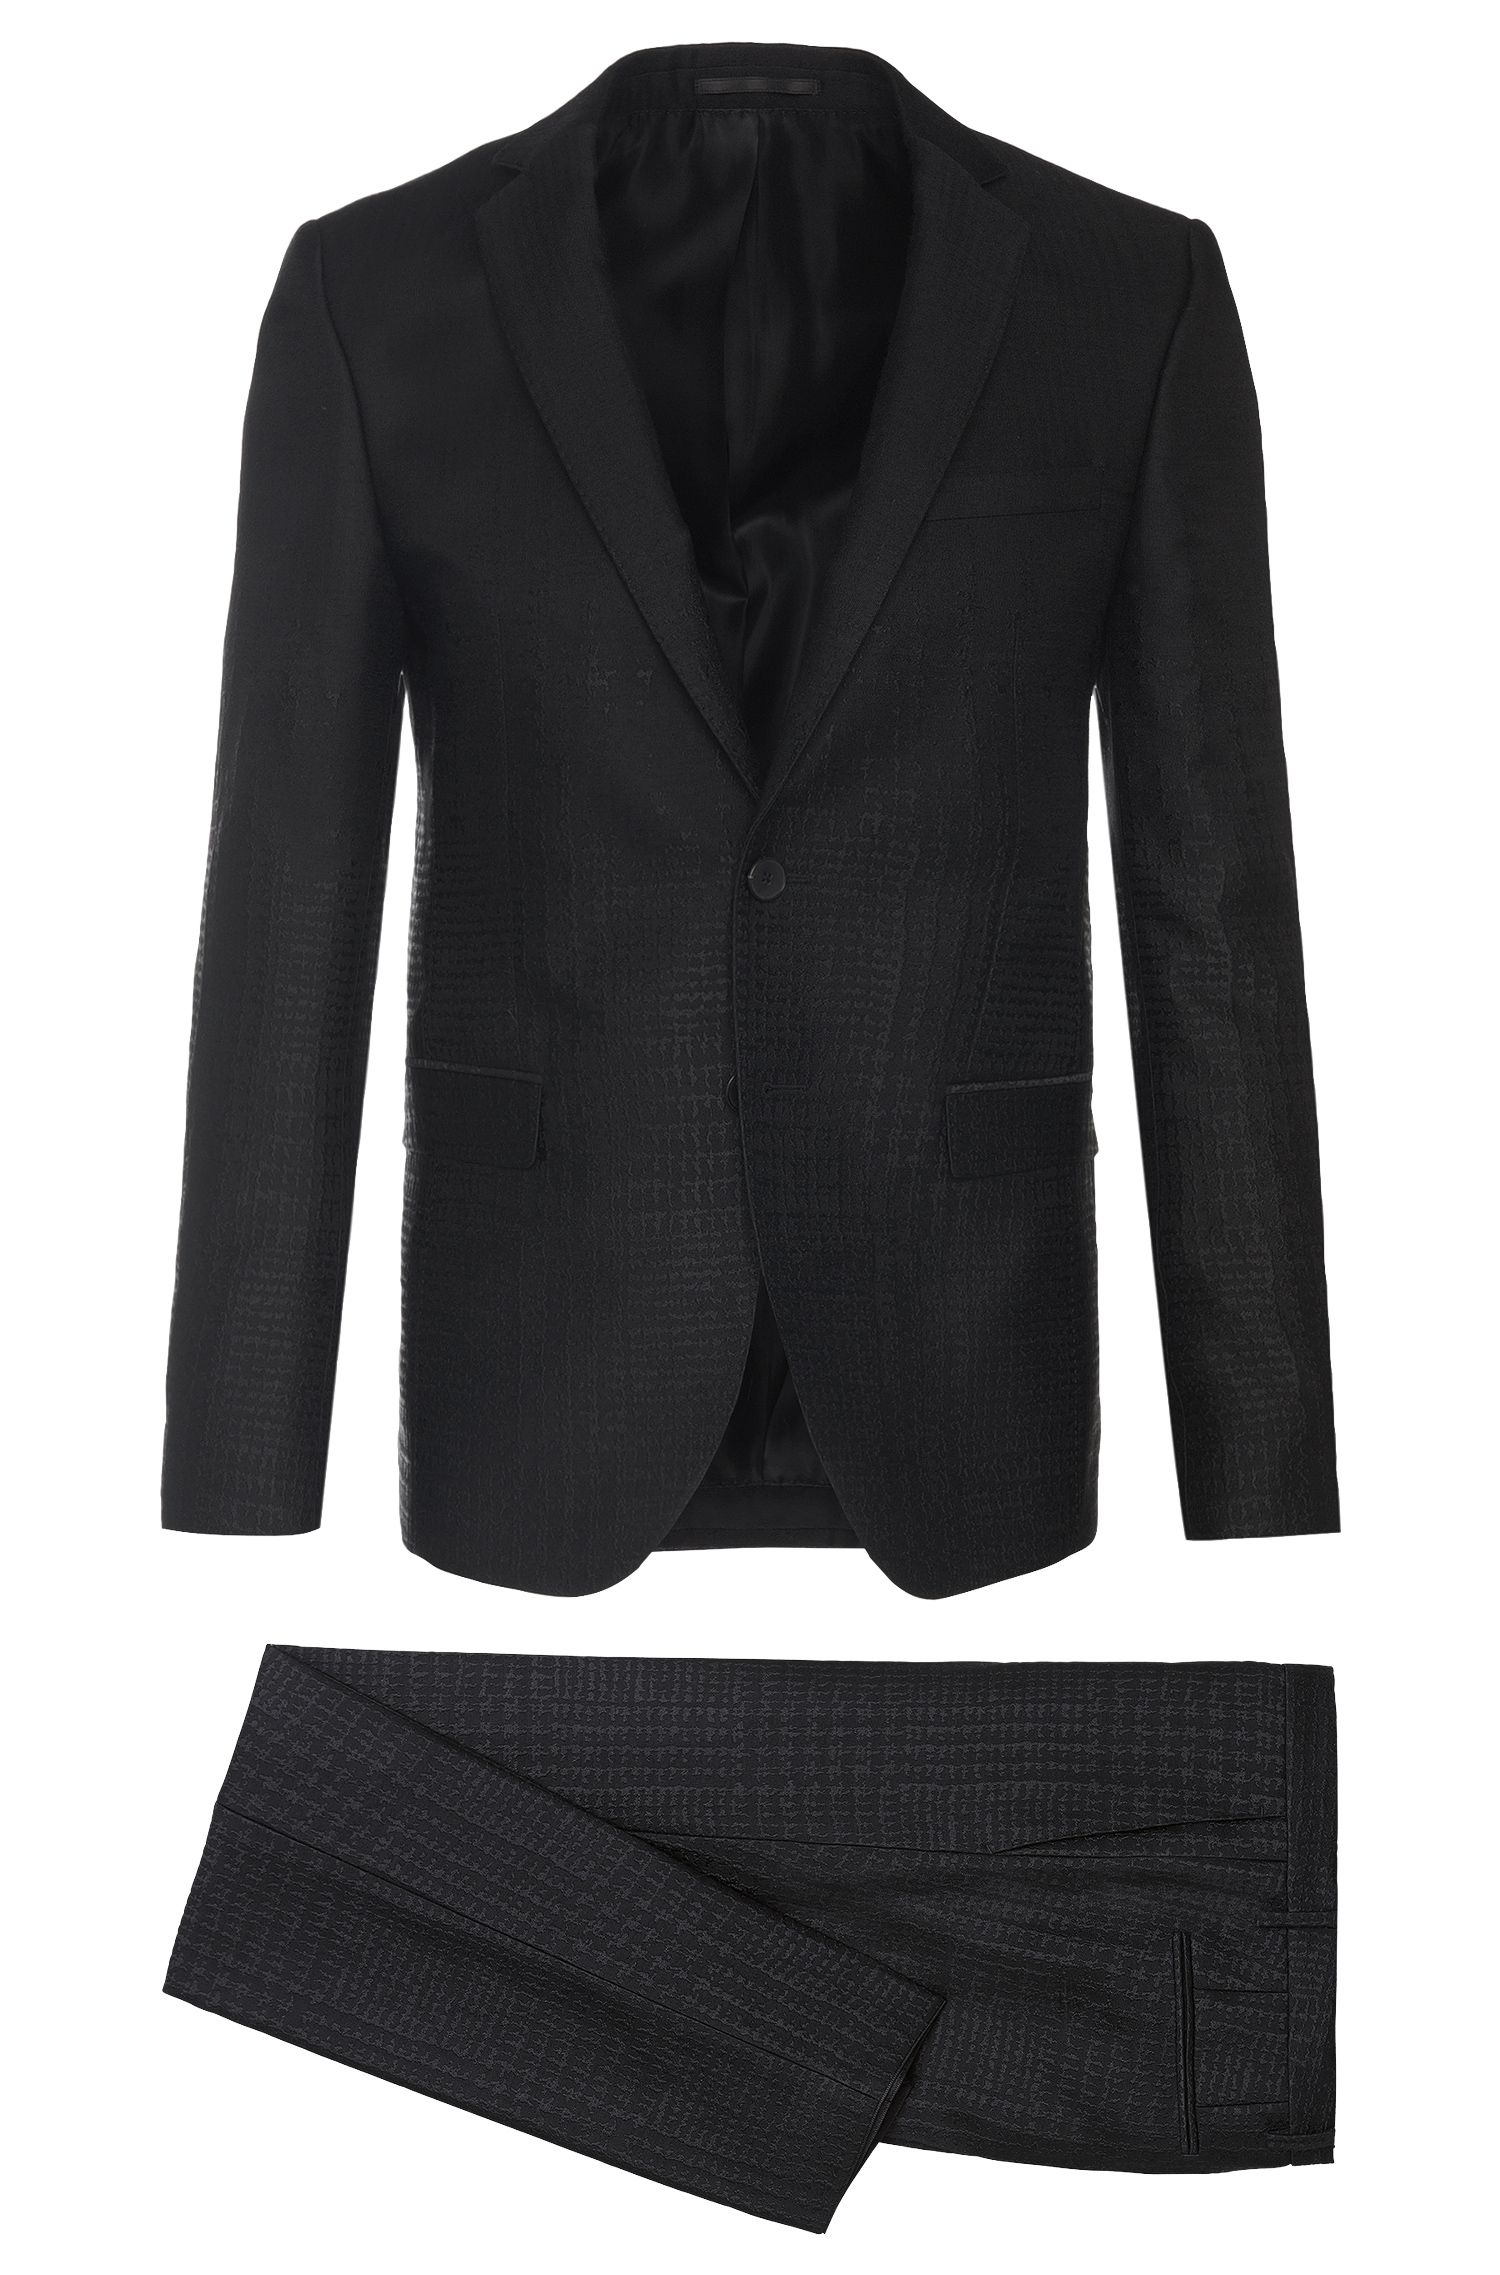 'Rocco/Wyatt' | Extra Slim Fit, Ombre Jacquard Wool Silk Suit